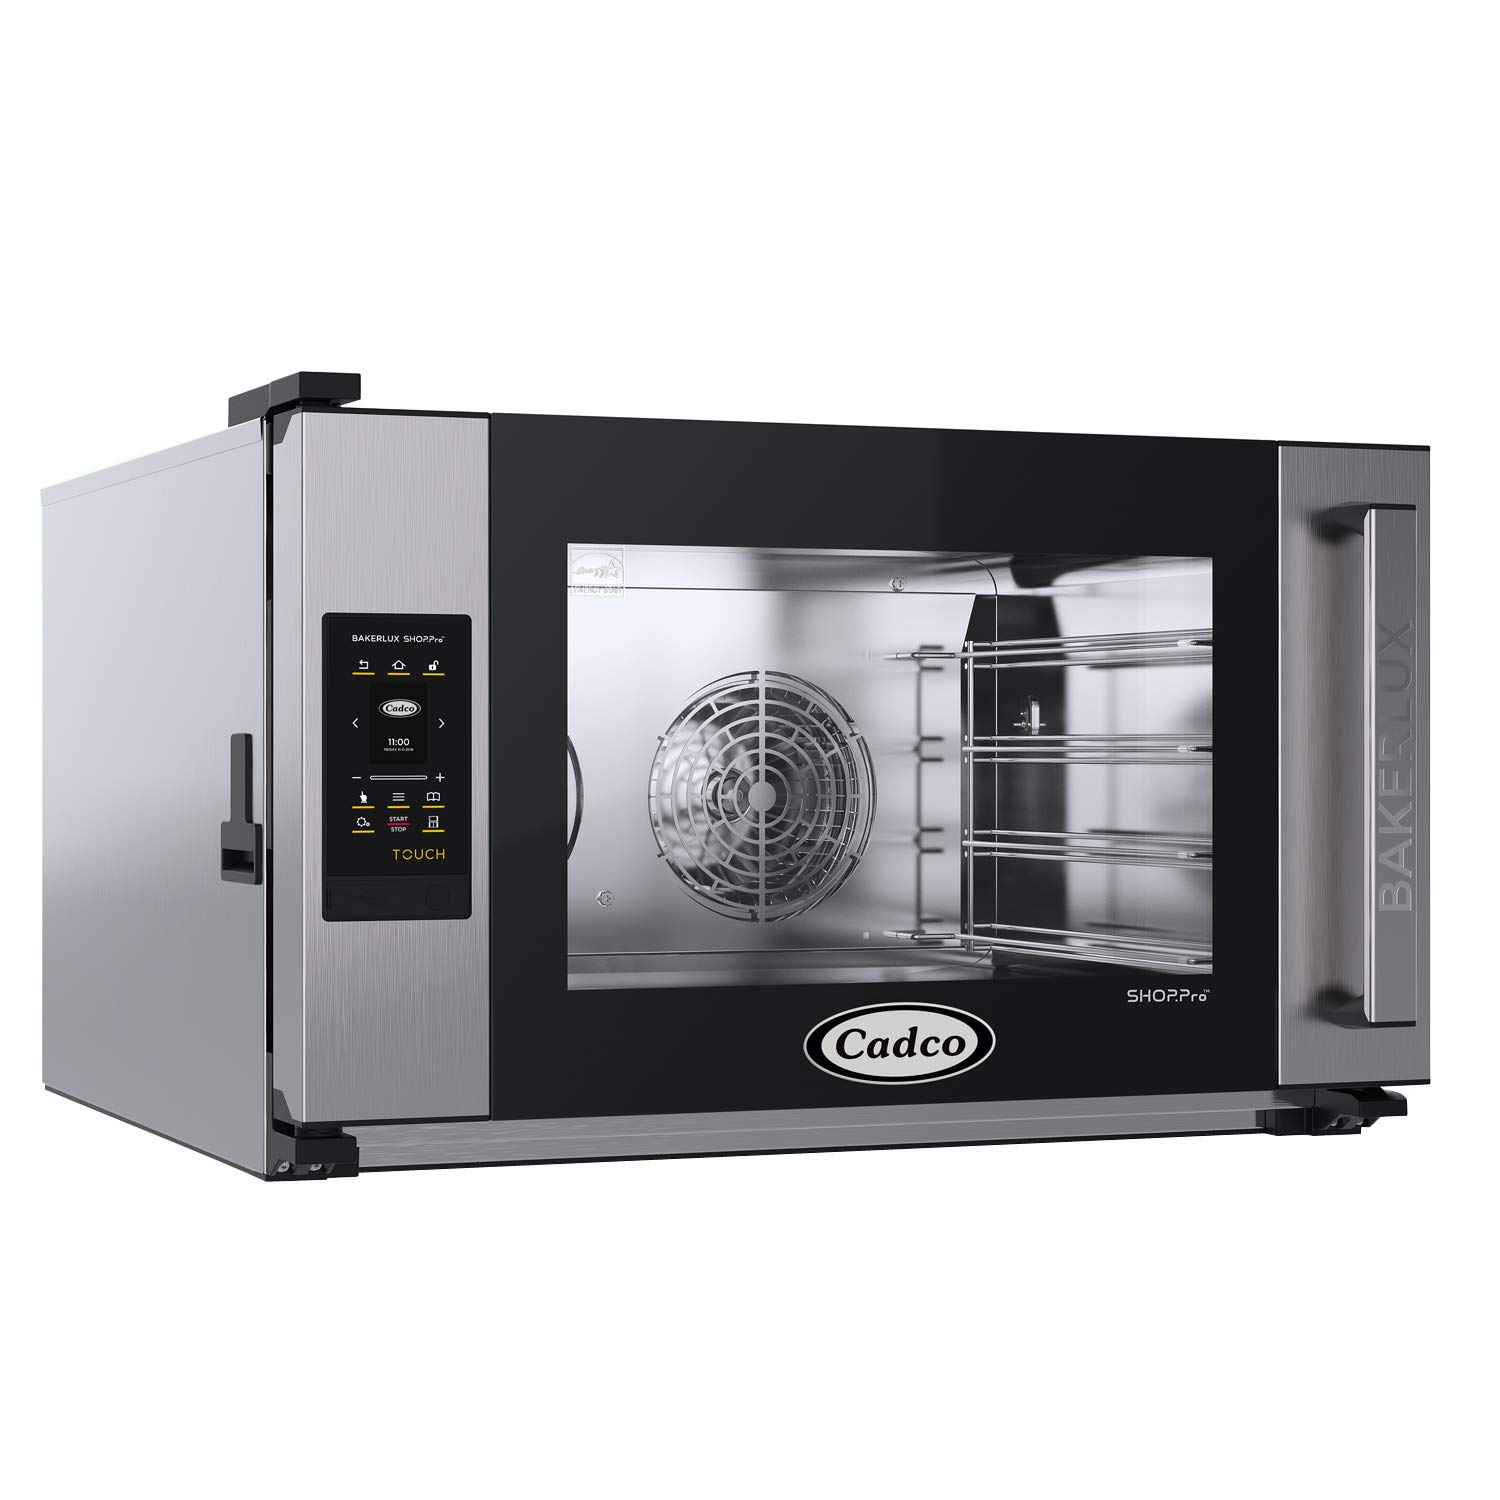 Cadco XAFT-04FS-TR Bakerlux TOUCH Heavy-Duty Electric Countertop Convection Oven, (4) Full Size Sheet Pan Capacity, Side Hinged Glass Door